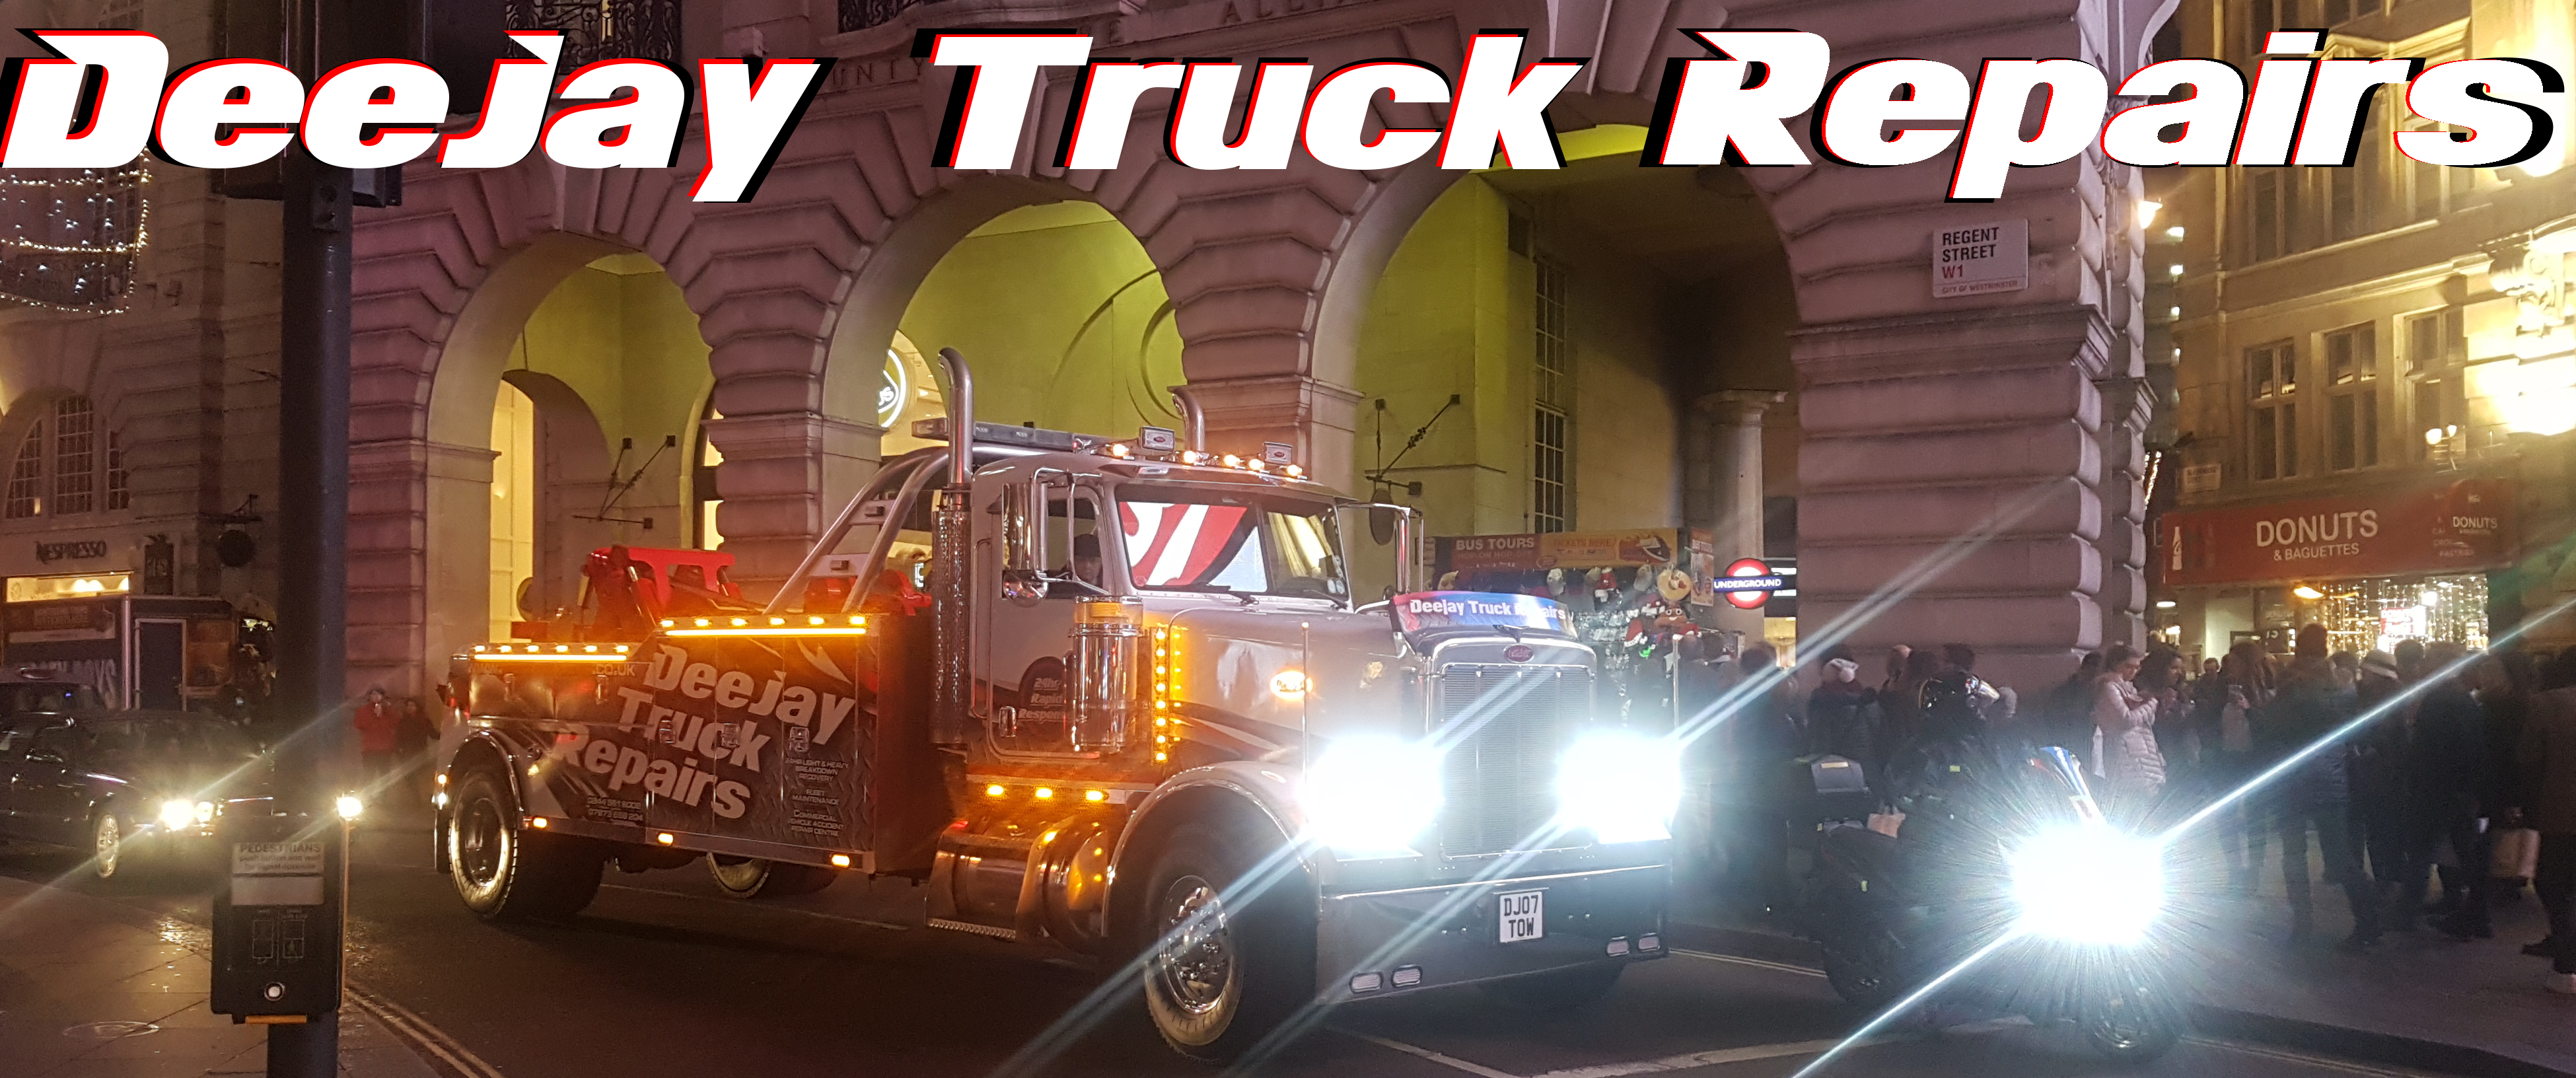 DeeJay Truck Repairs Ltd